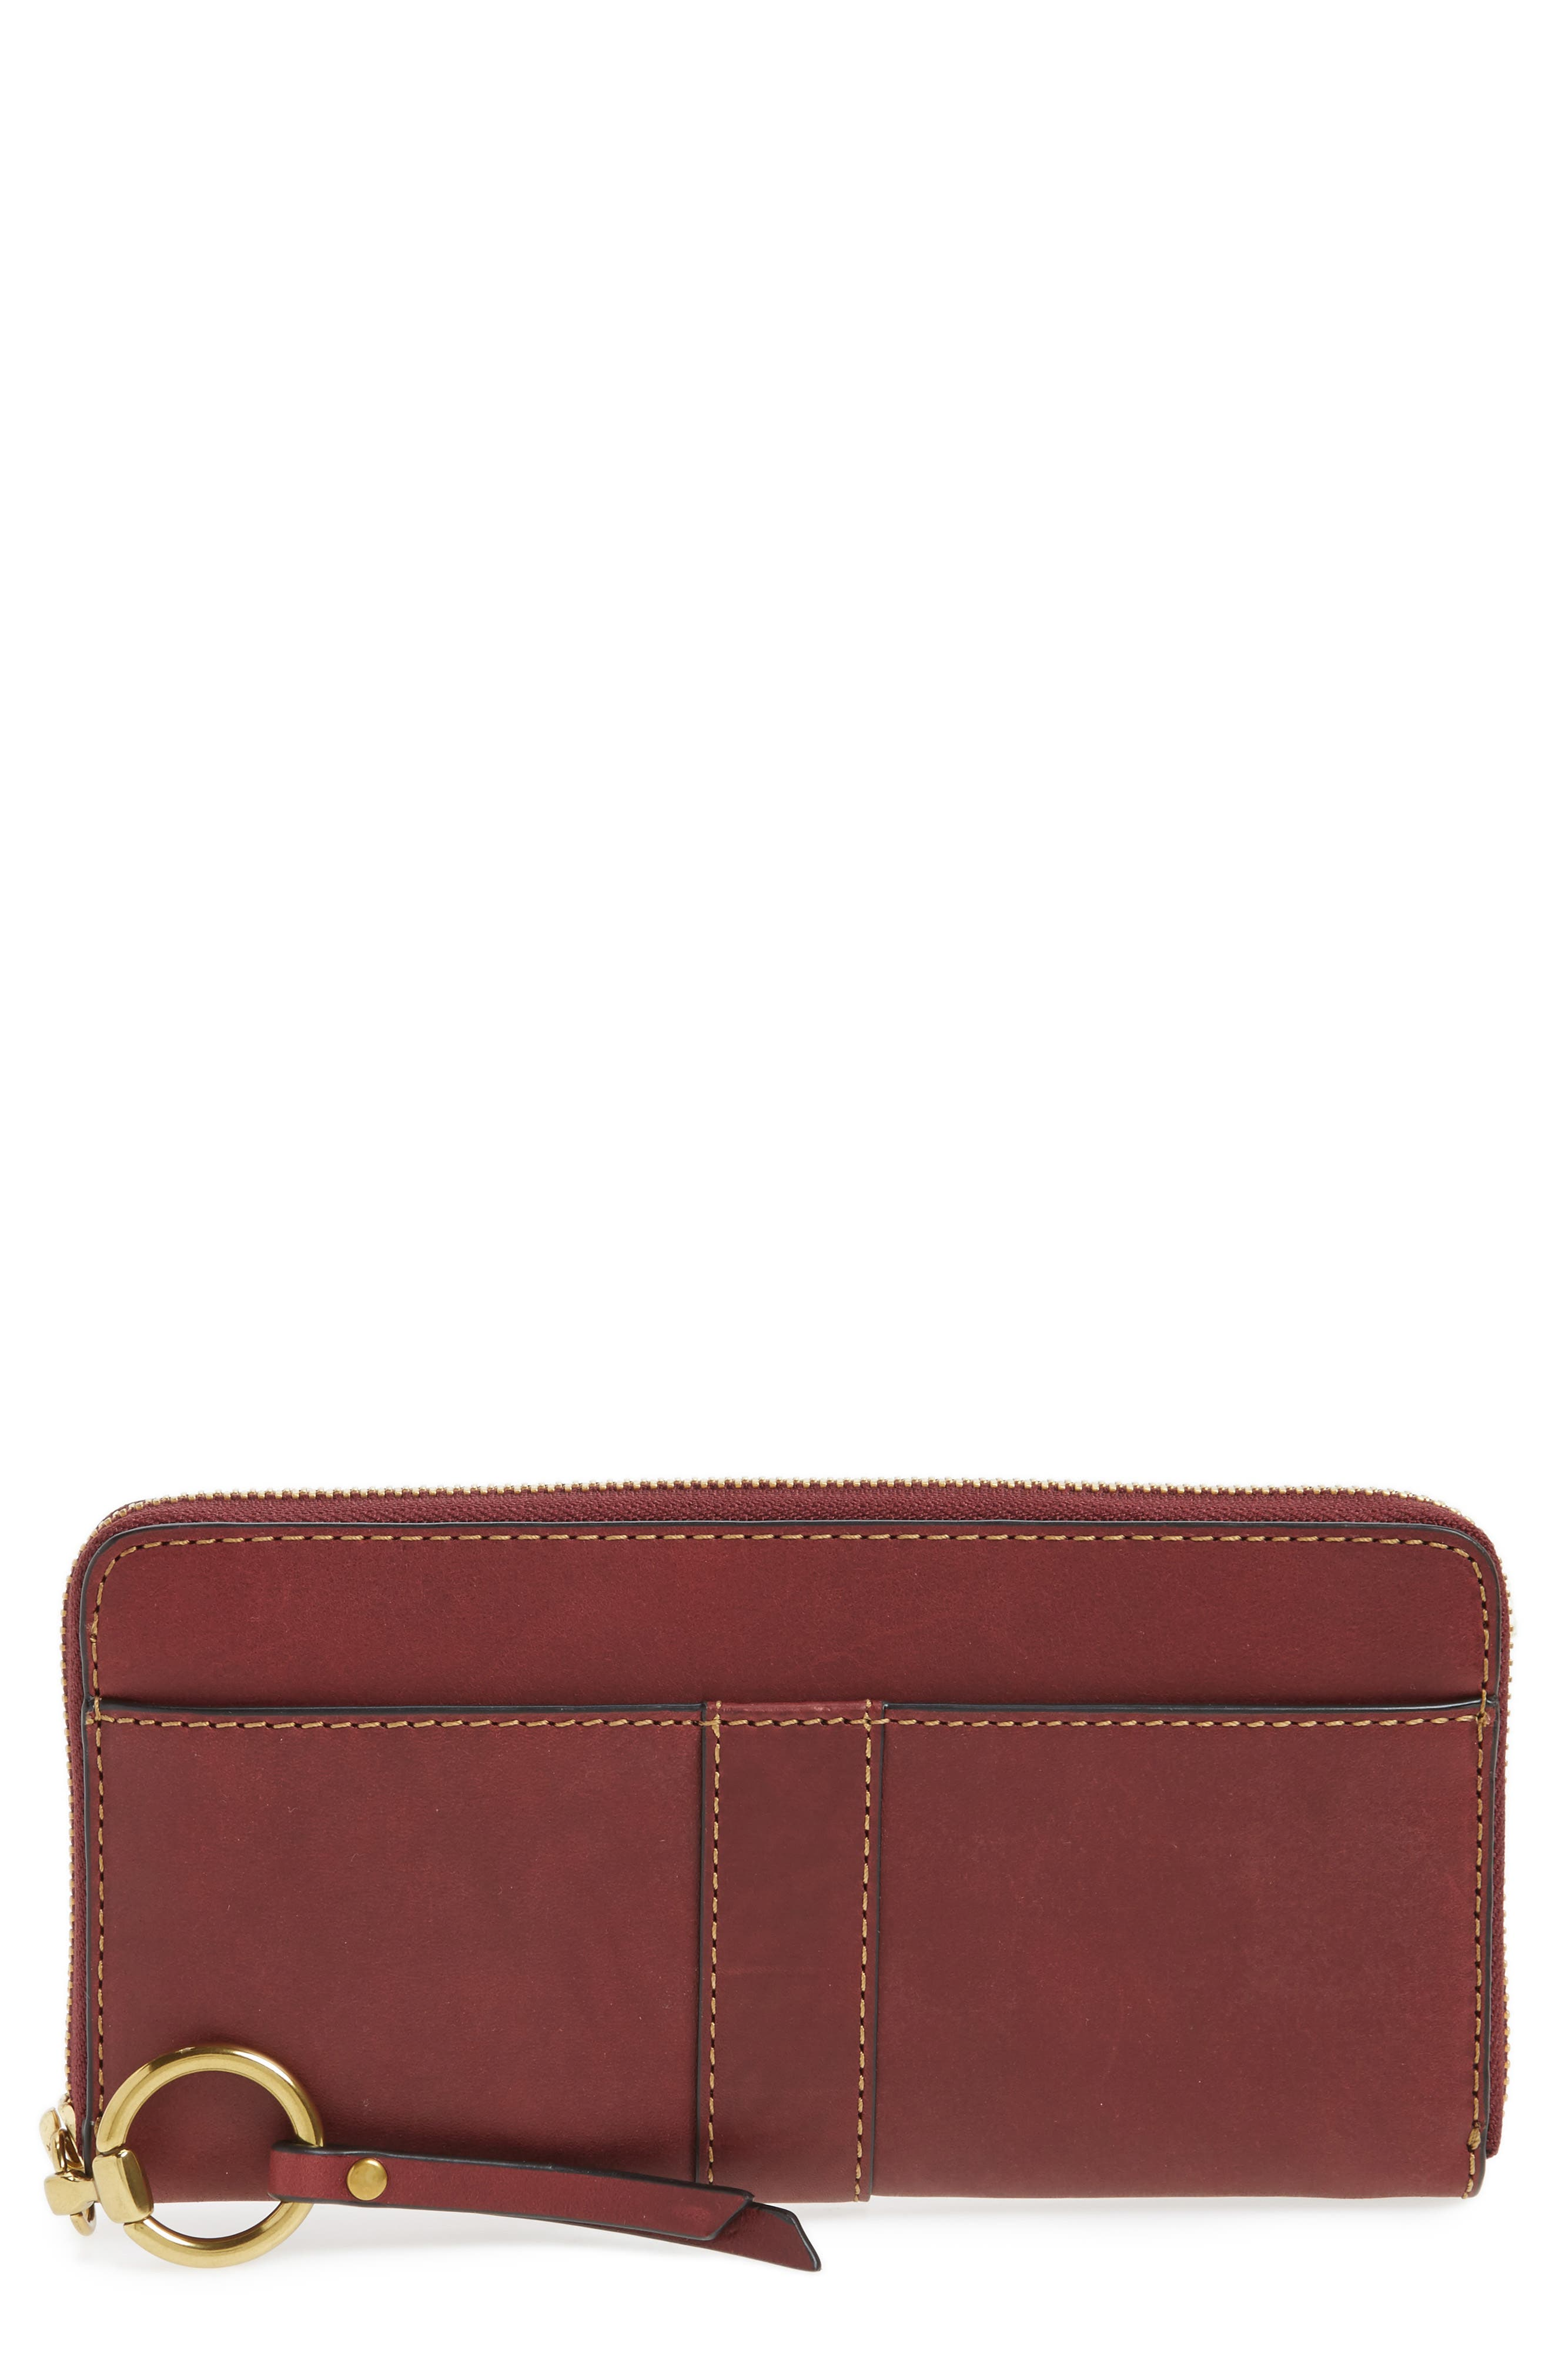 Ilana Harness Leather Zip Wallet,                             Main thumbnail 1, color,                             Wine